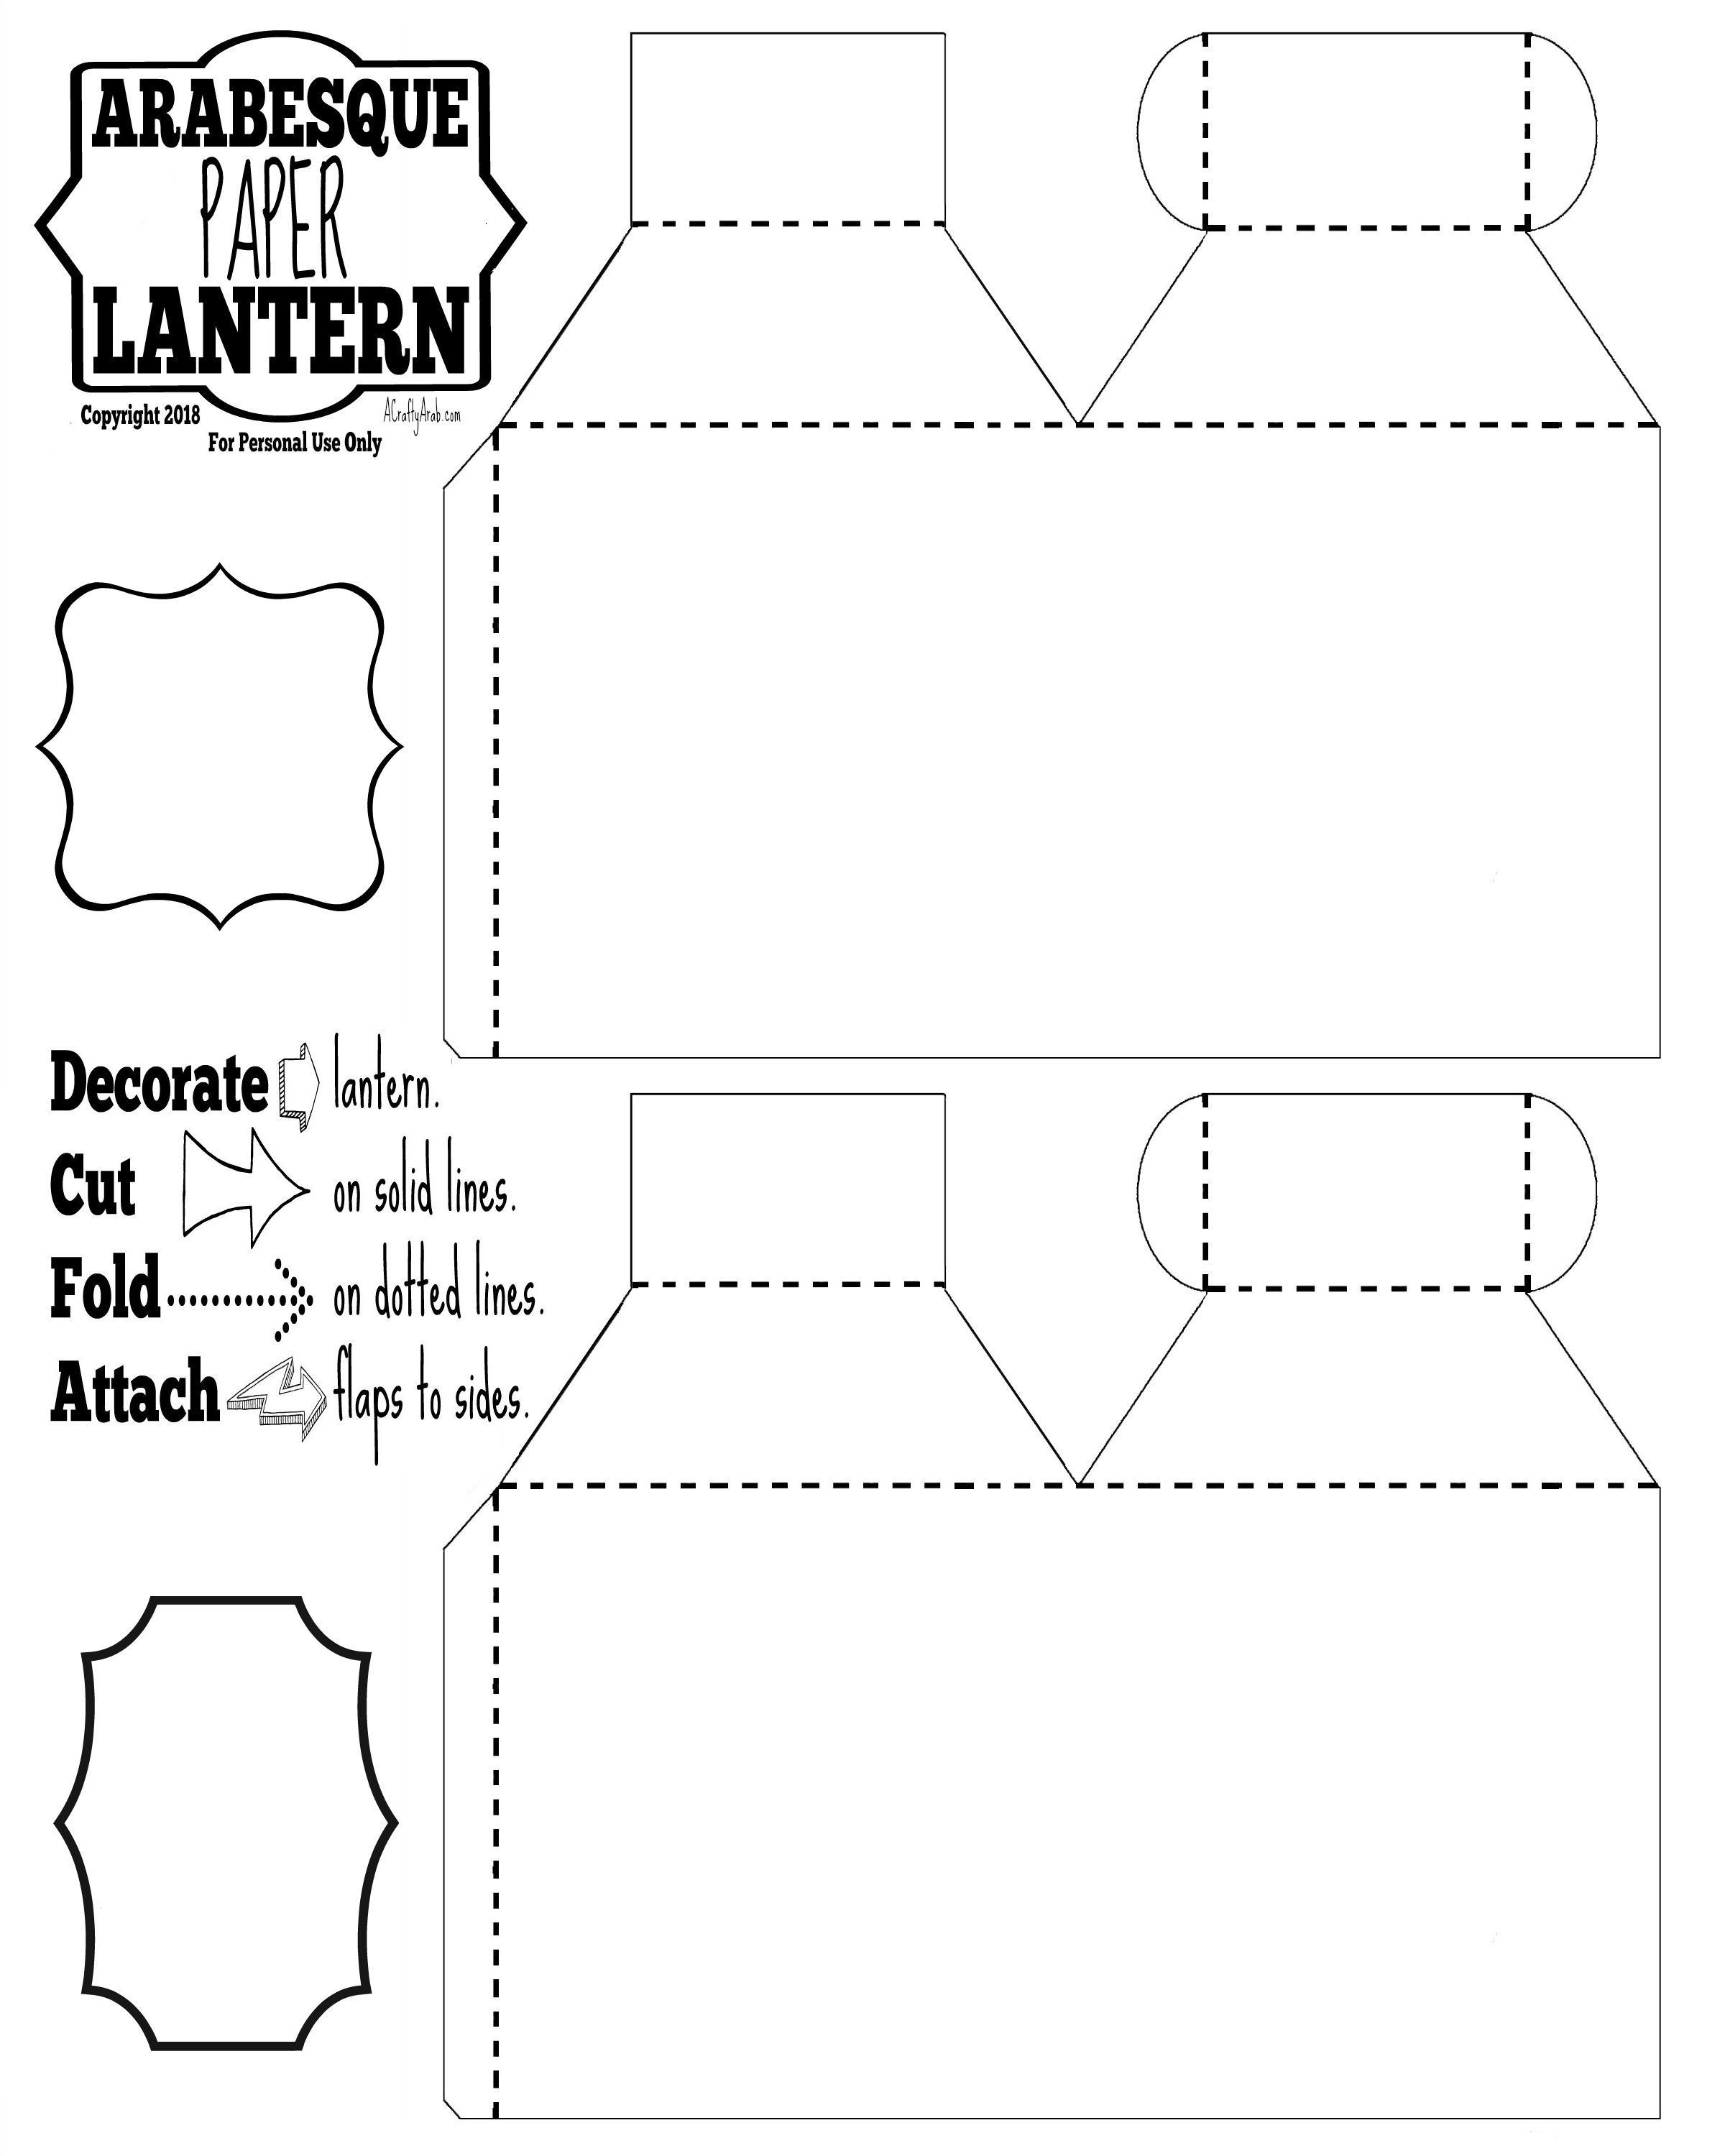 image about Lantern Template Printable identify Arabesque Paper Lanterns Printable via A Cunning Arab